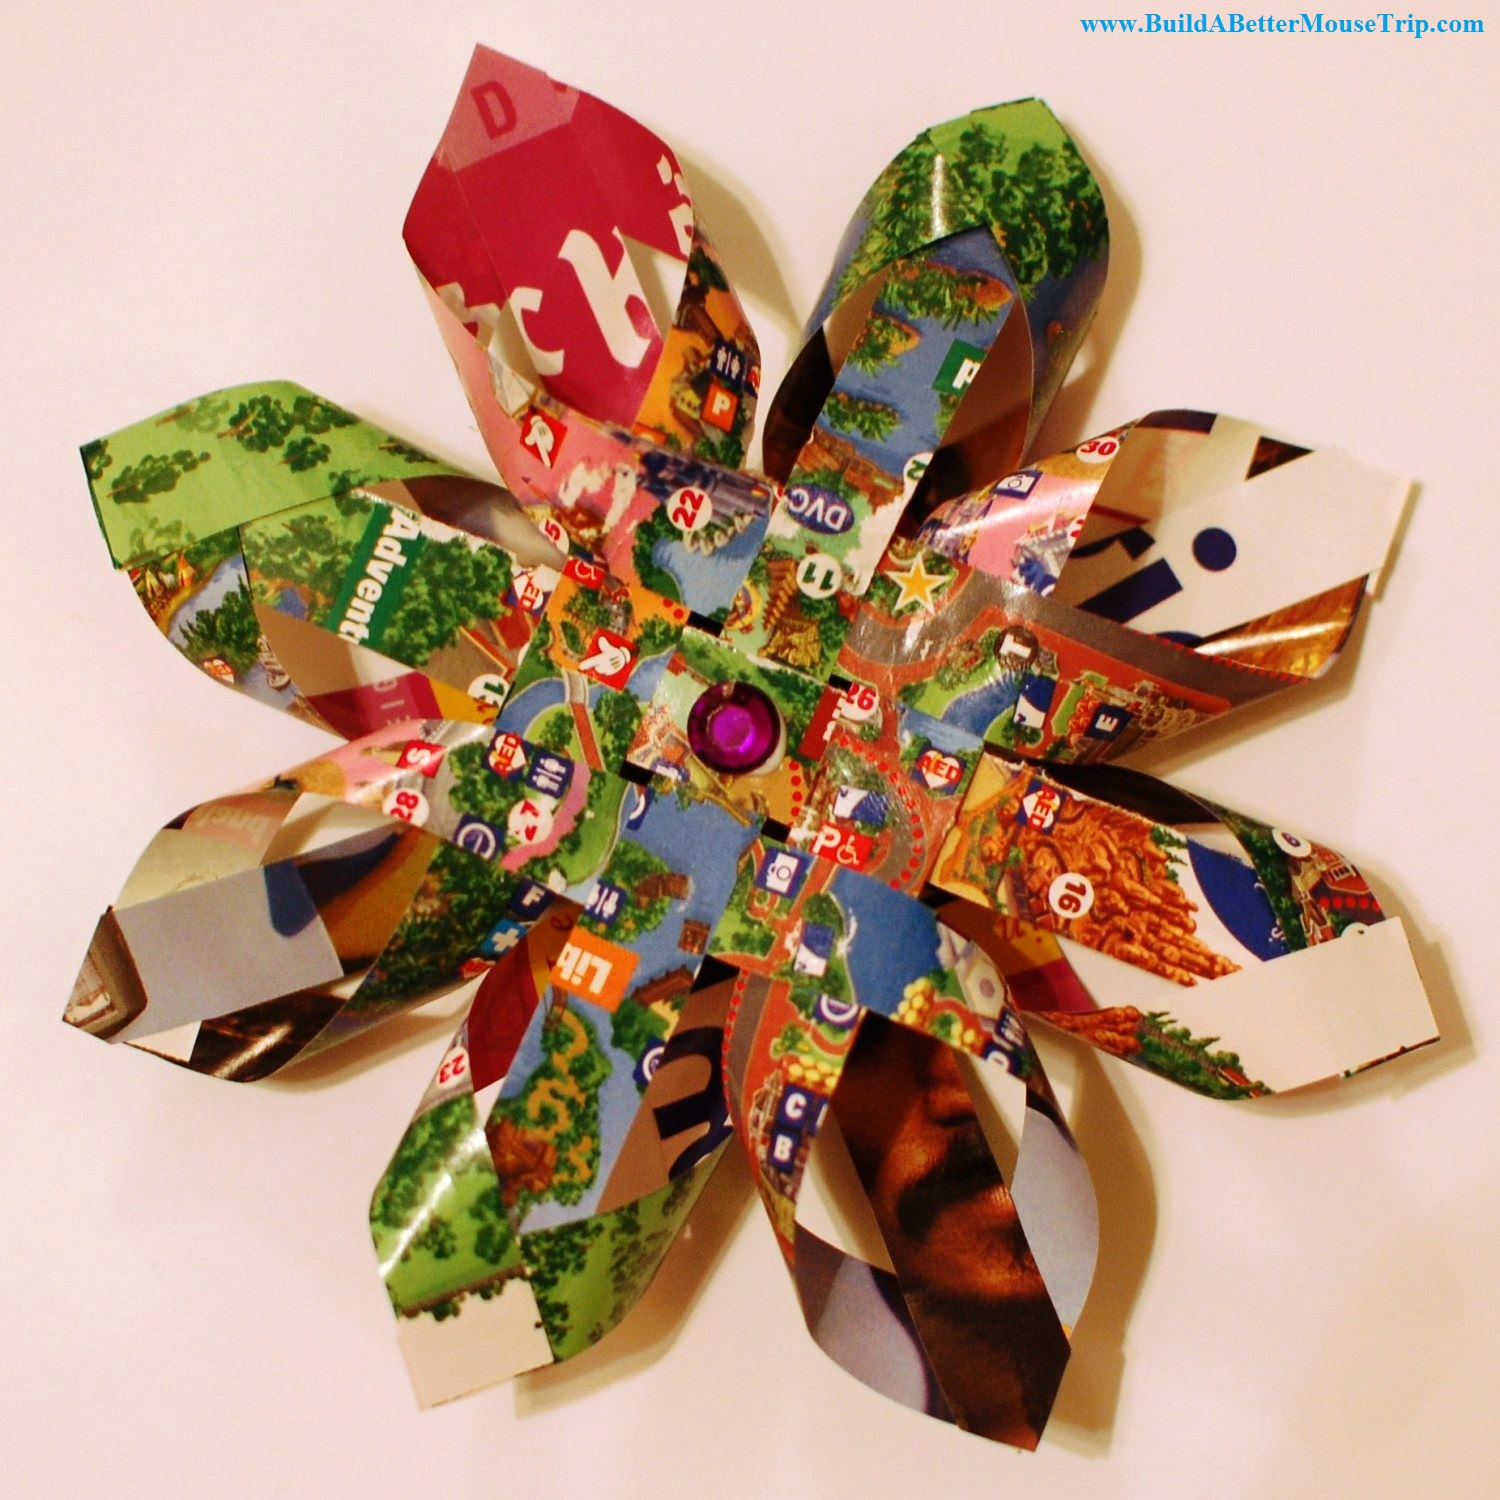 Snowflake ornament made from a Disney World park map - includes video instructions.  Easy craft project. See: http://www.buildabettermousetrip.com/disney-map-snowflake